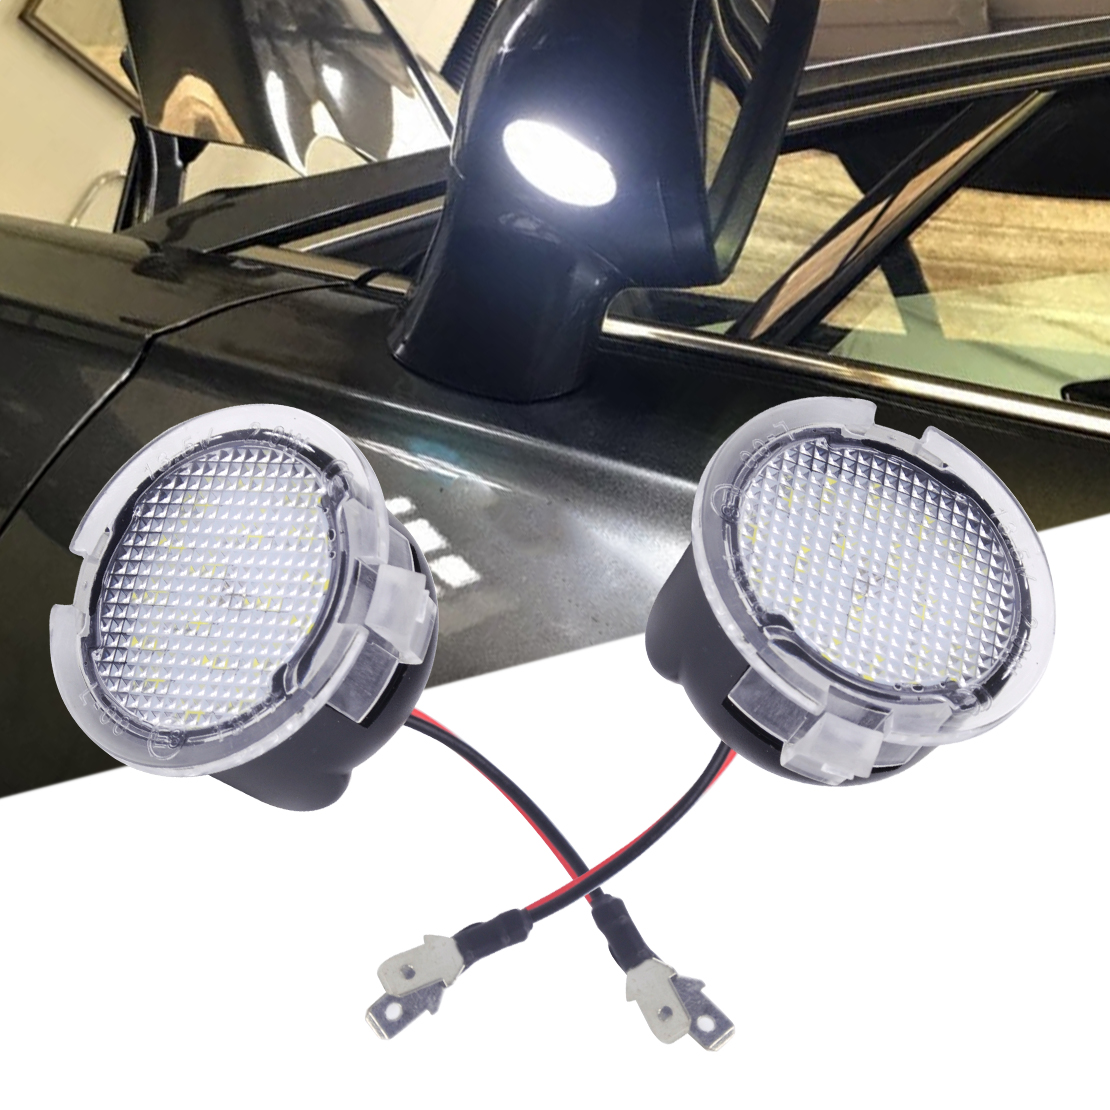 CITALL 2PCS High Power White LED Side Mirror Puddle Lights Fit For Lincoln MKS MKT MKZ MKX Navigator LS